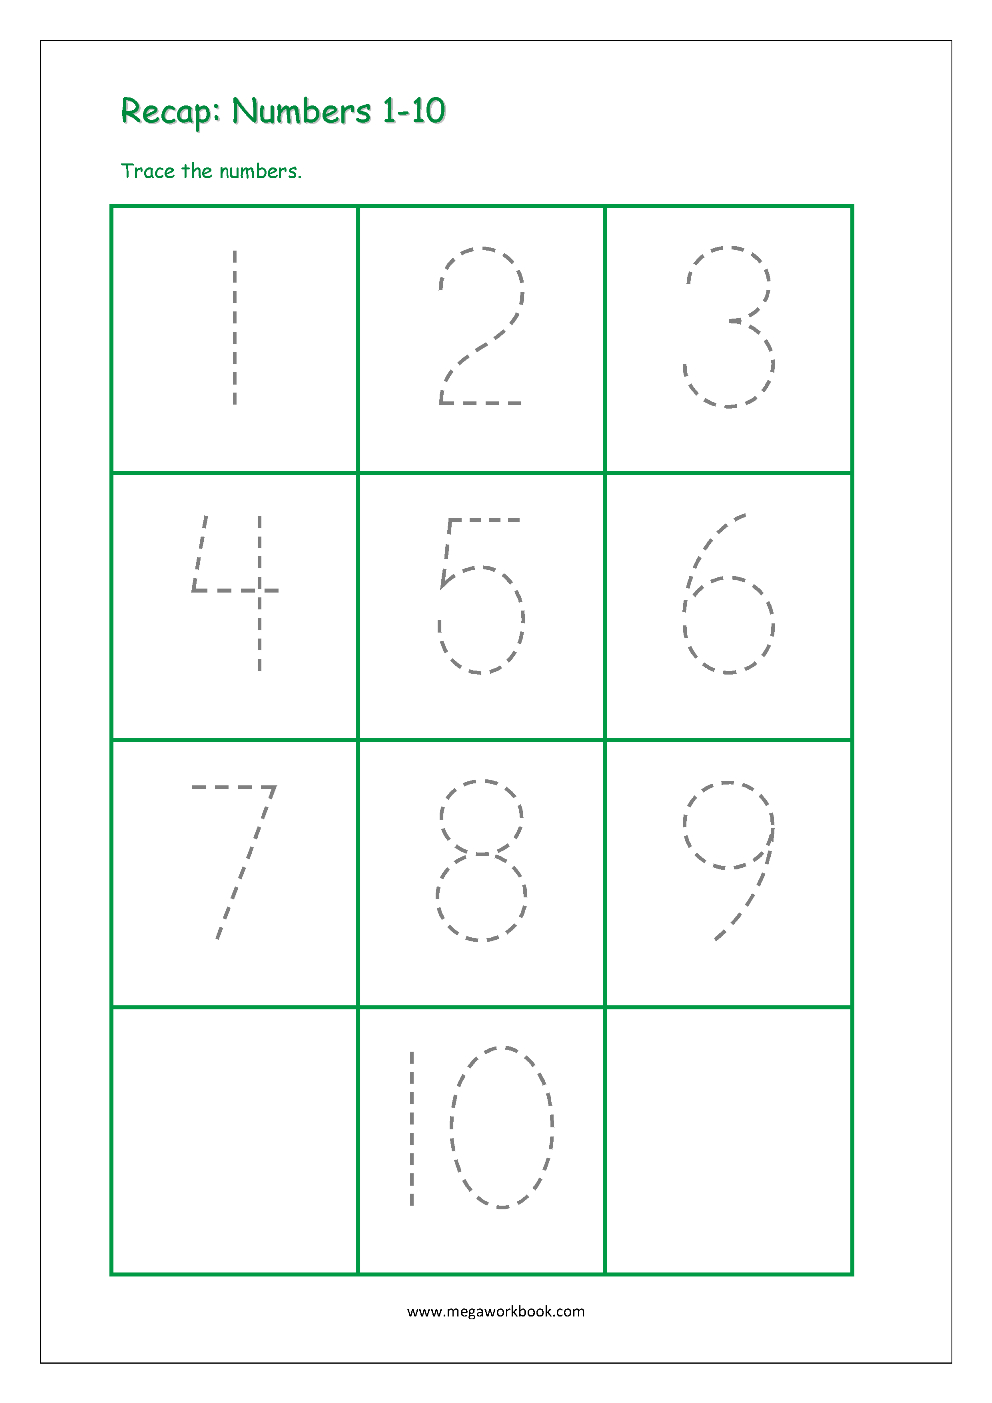 May8Forstudents Page 89: Printable Number Worksheet. Number